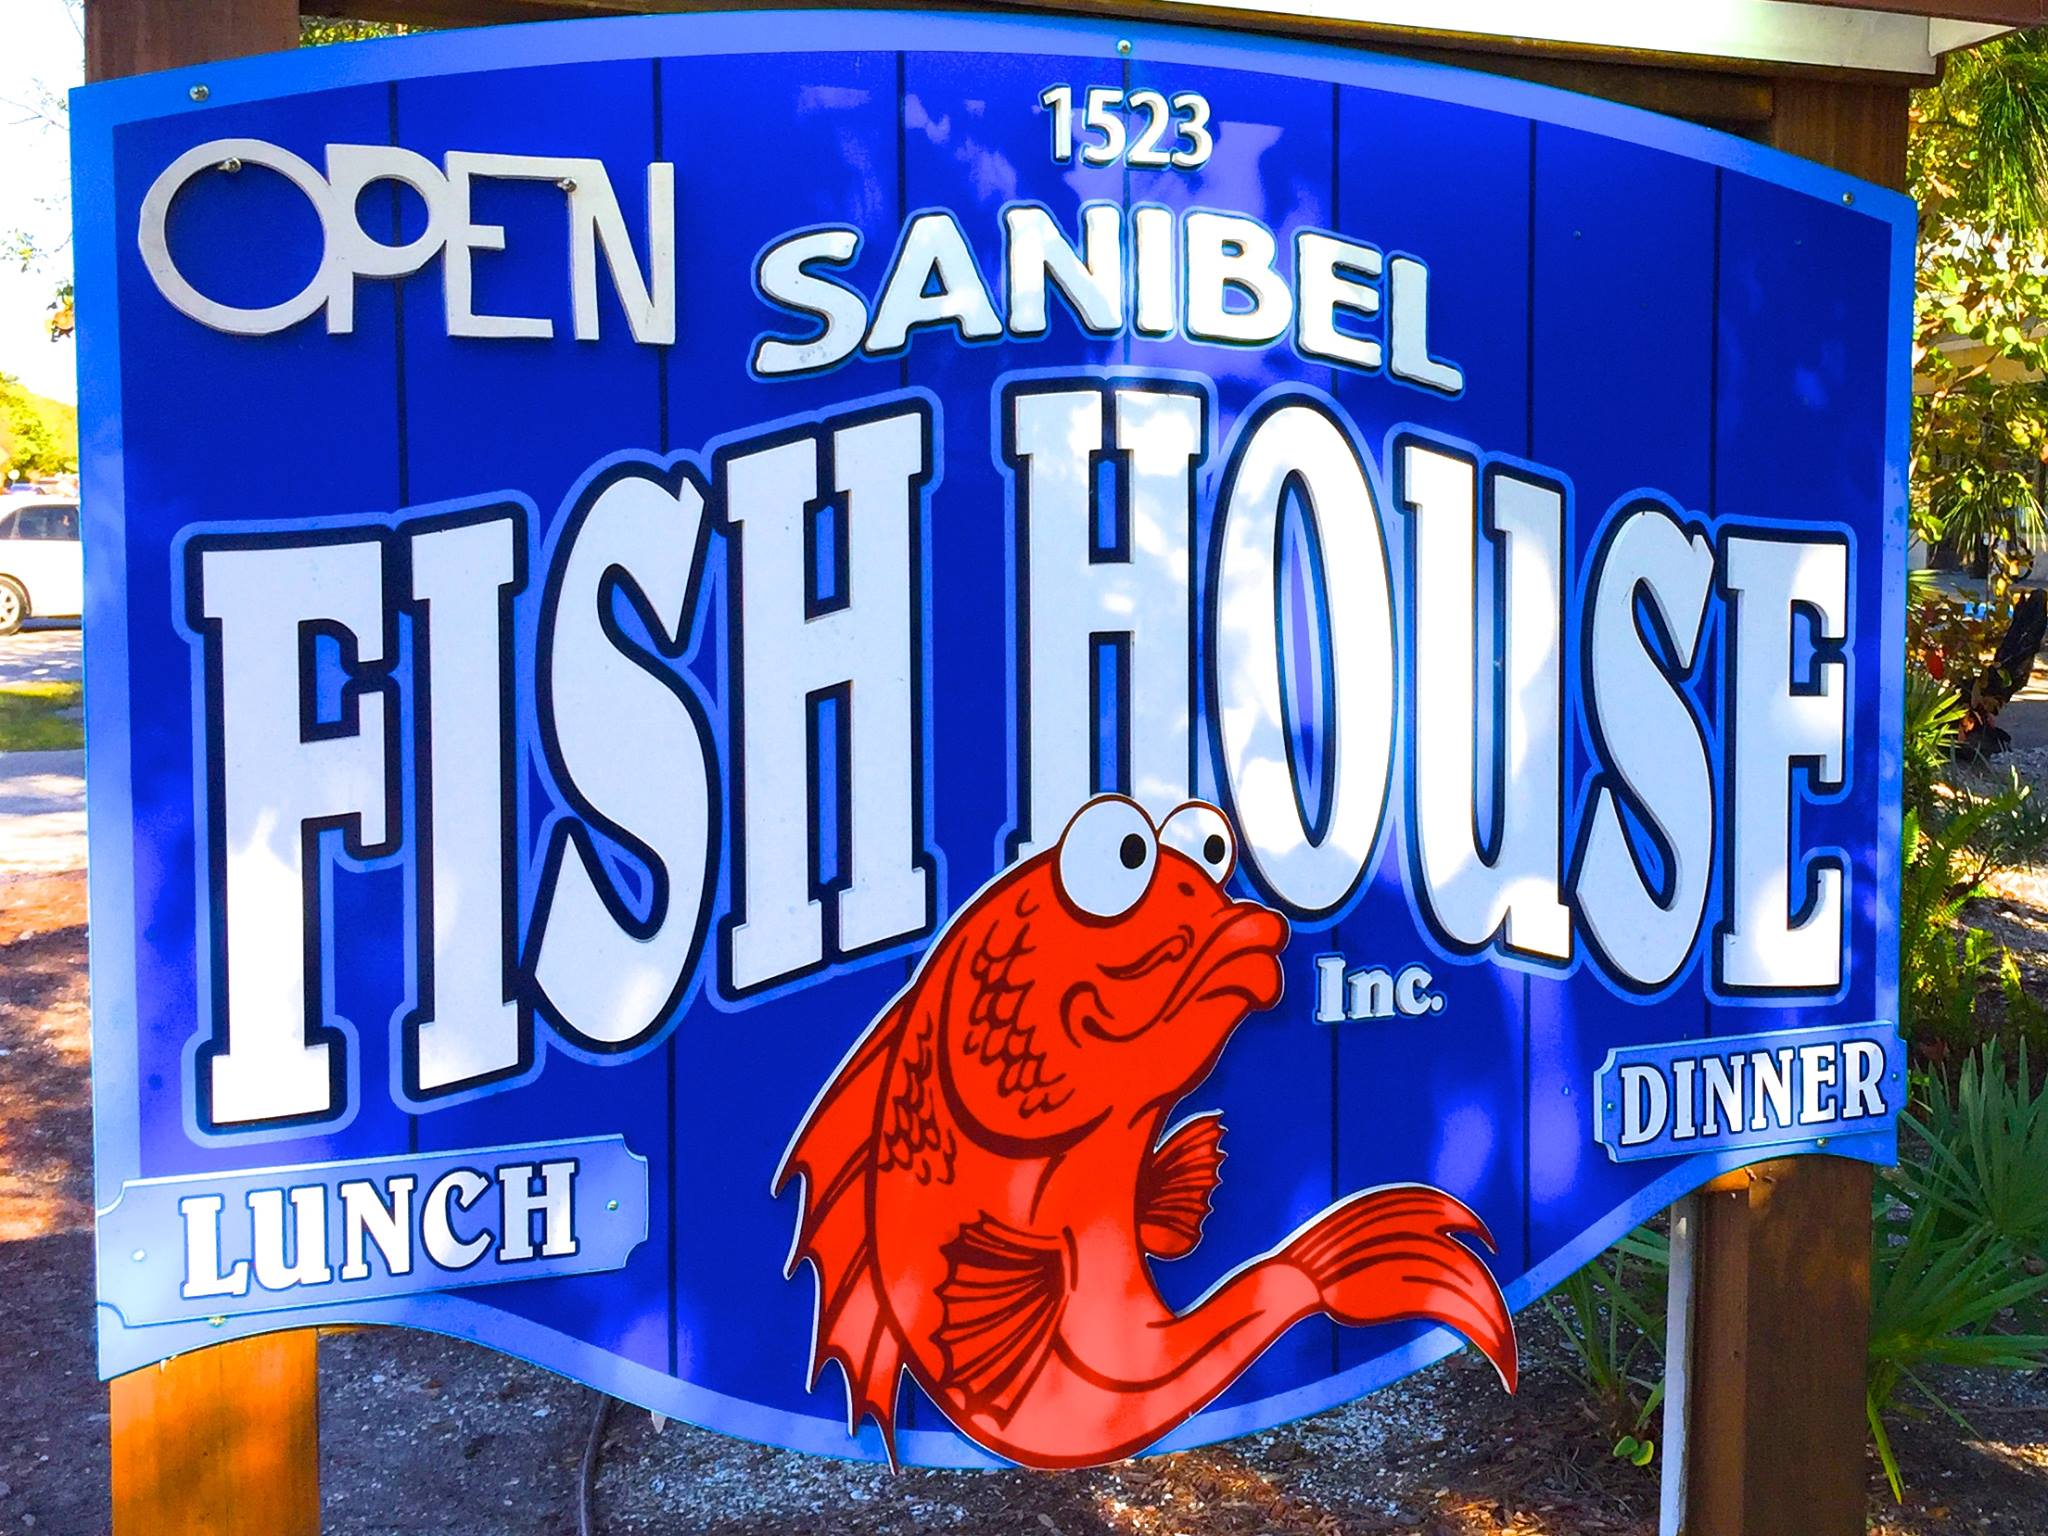 Sanibel Fishhouse